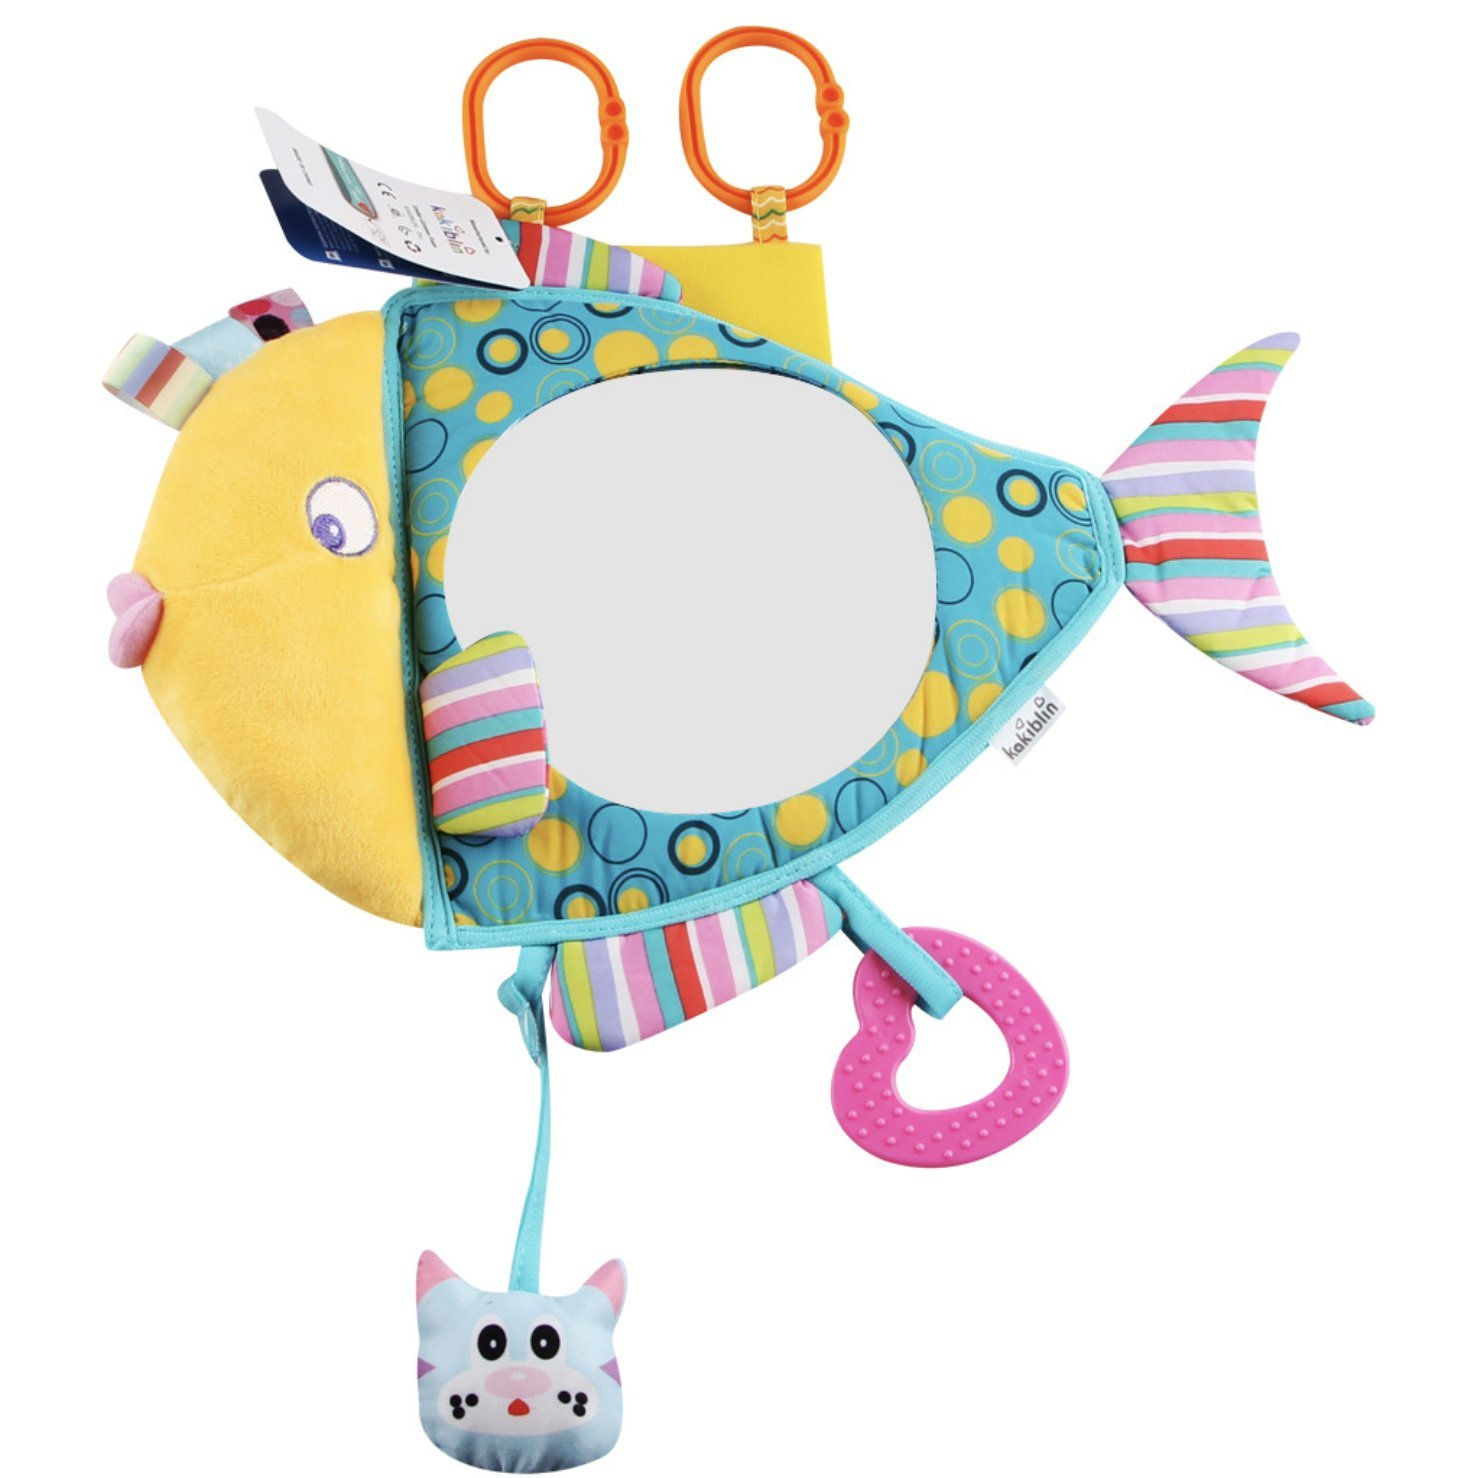 Fish Shaped Floor Mirror, Ealing Kids Discover & Play Activity In-Sight Backseat Mirror, Shatterproof Rear Facing Infant Car Safety Mirror, Plush rattles Toddler Stroller Hanging Educational Crib Toy